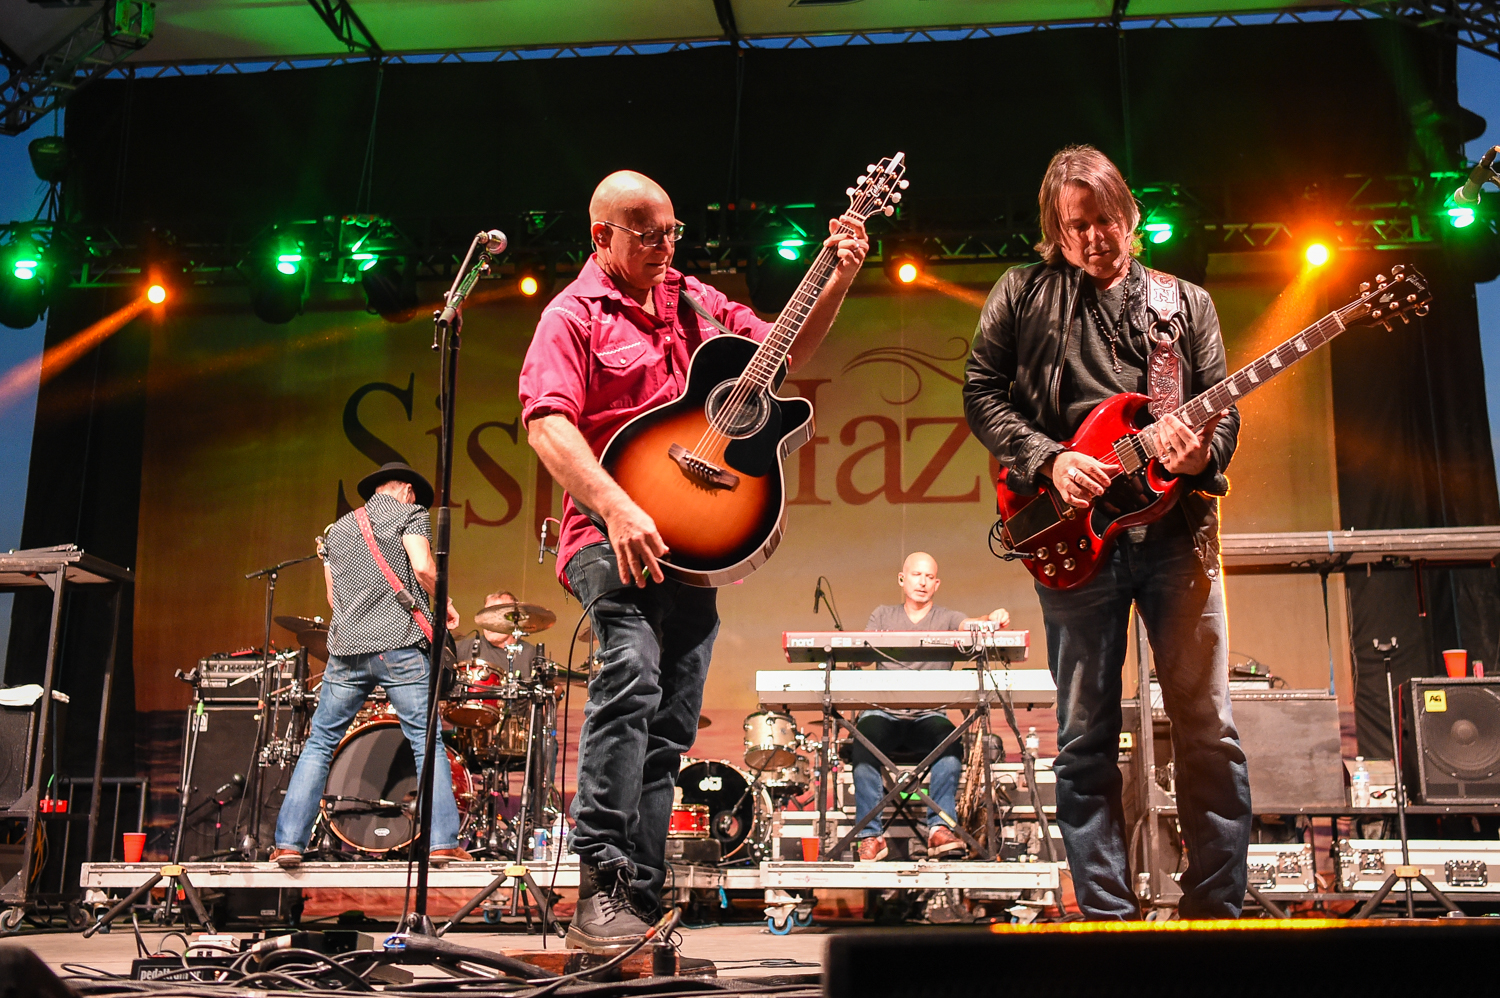 (L-R) Jett Beres, Mark Trojanowski, Ken Block, Dave LaGrande and Ryan Newell with the band Sister Hazel perform in a socially distancing concert at the HEB Center at Cedar Park, Cedar Park Texas on October 2, 2020. Photo © Manuel Nauta